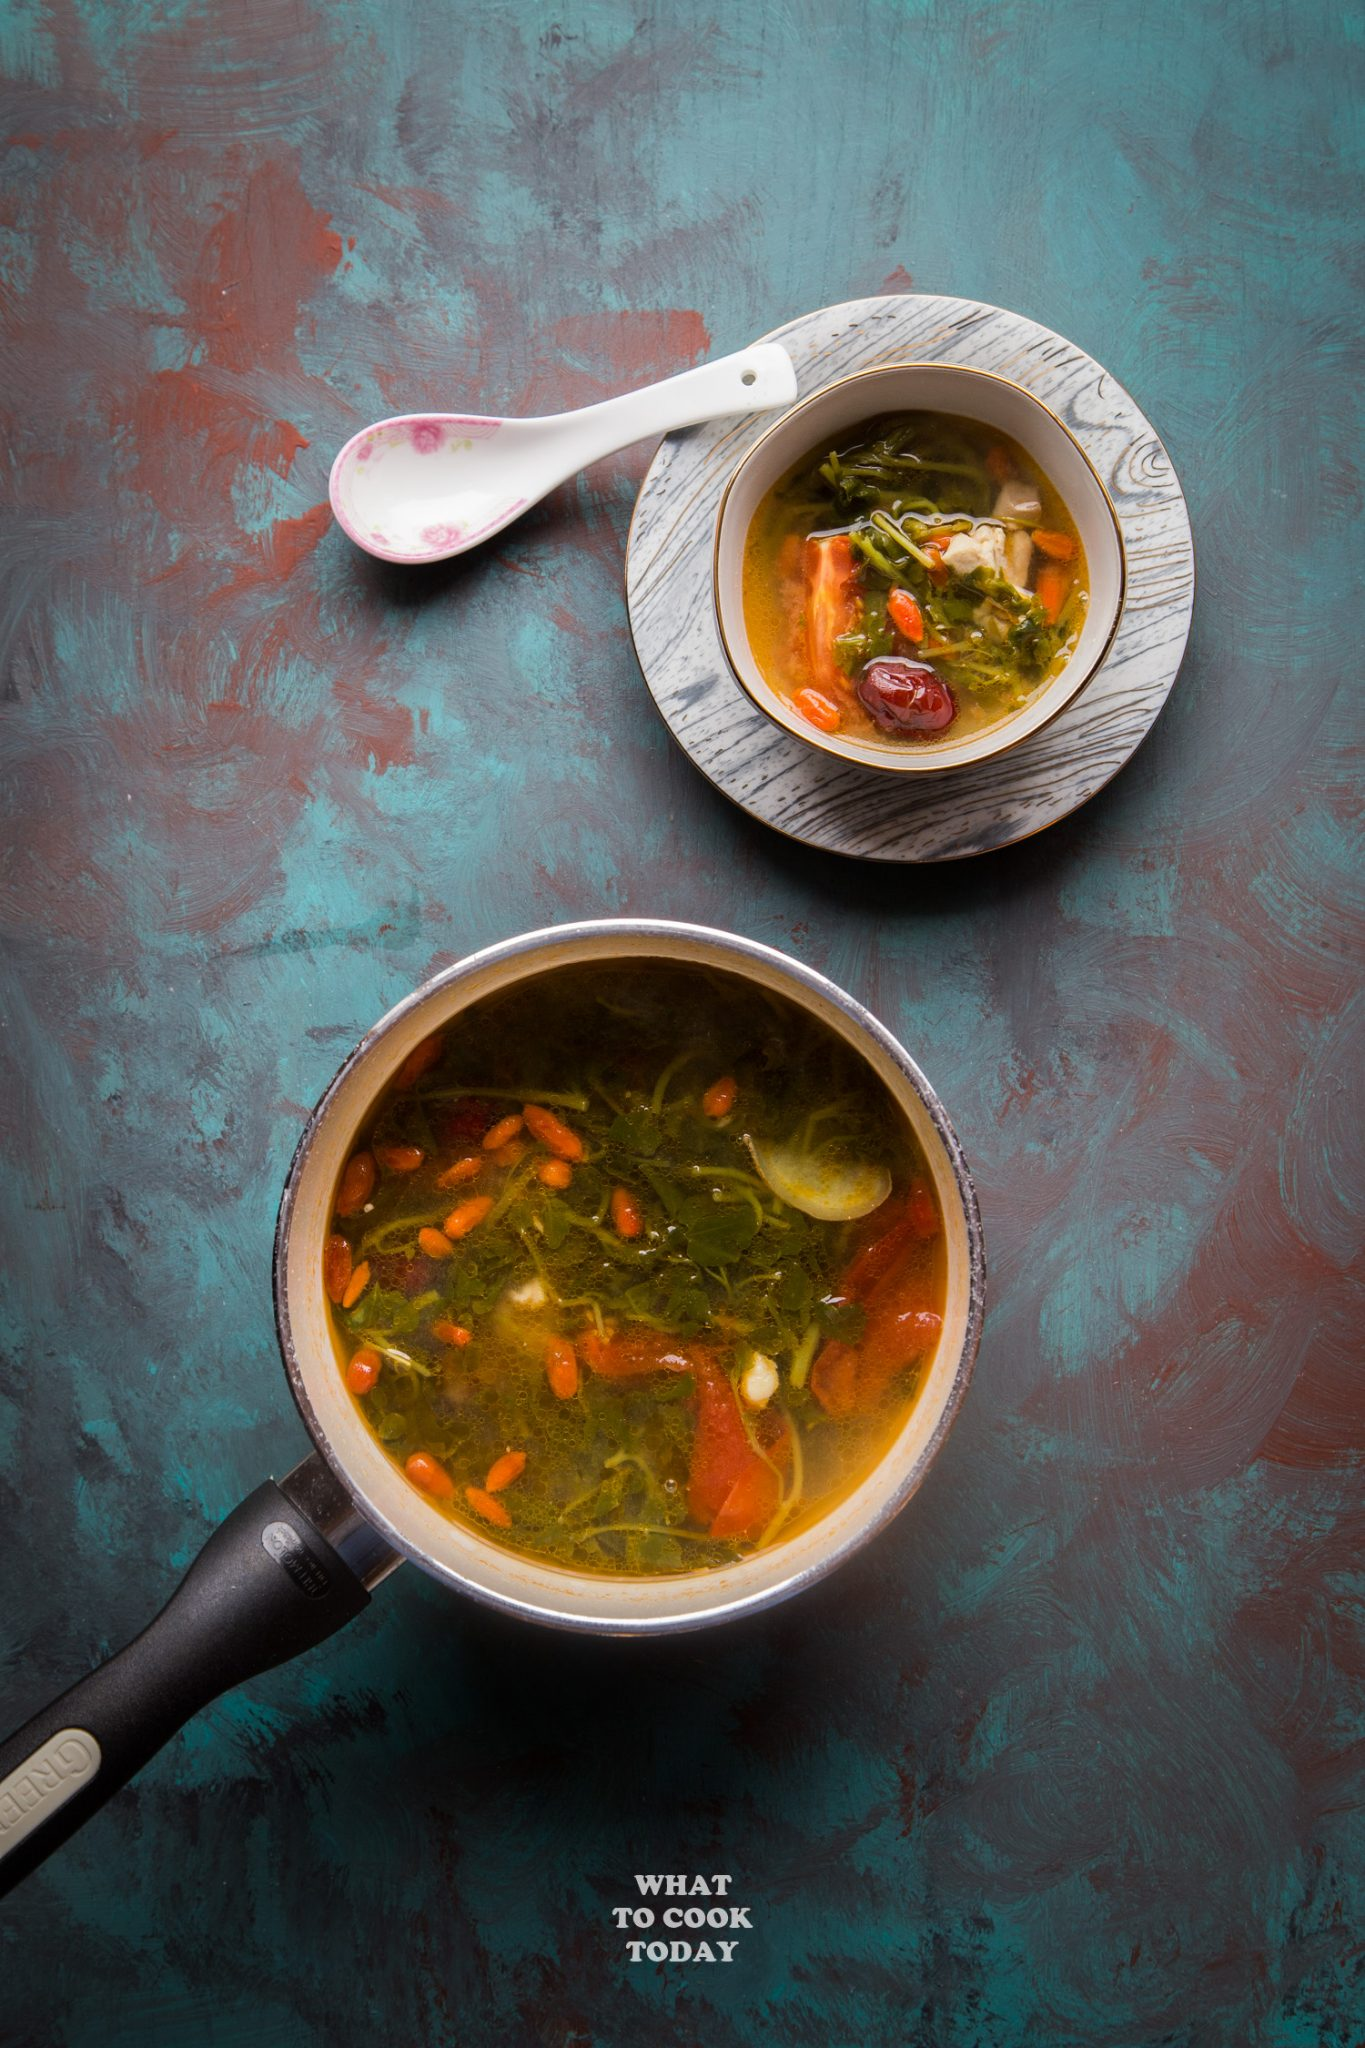 Chinese Watercress Soup (Sai Yong Choy Tong) #soup #watercress #chinesesoup #instantpot